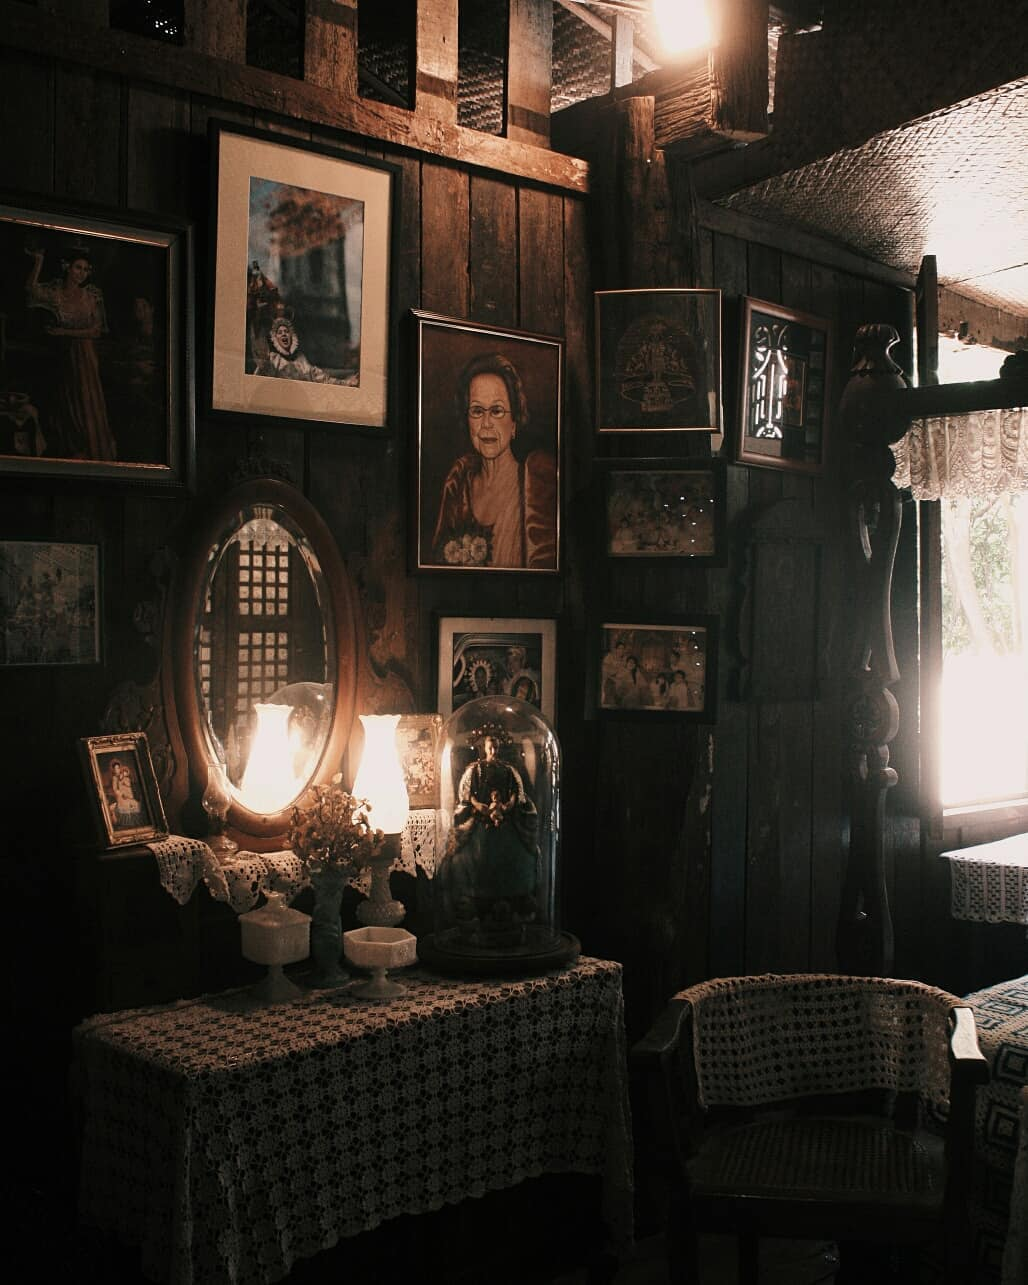 Curiosities that can be found insider the ancestral house